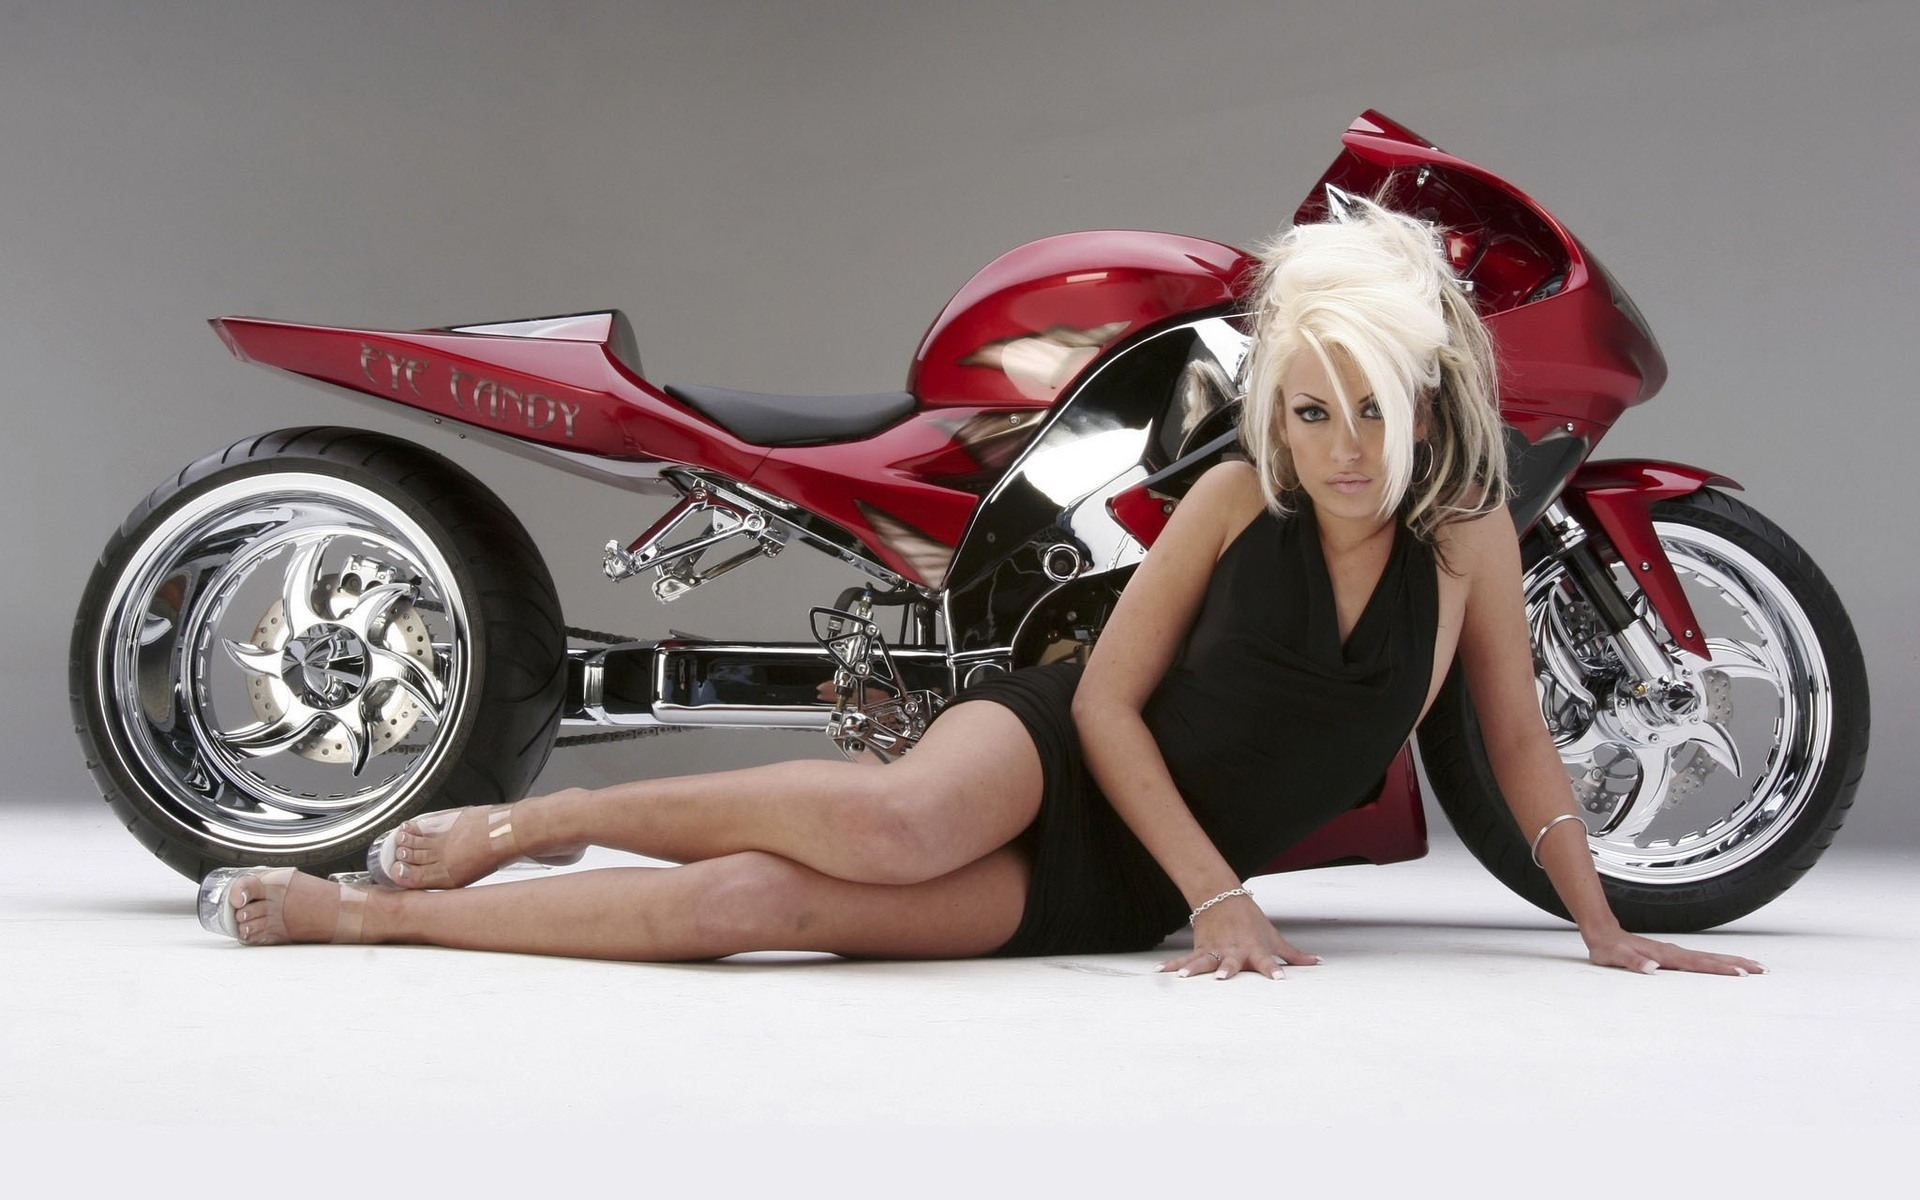 Motorcycle concept & blonde girl